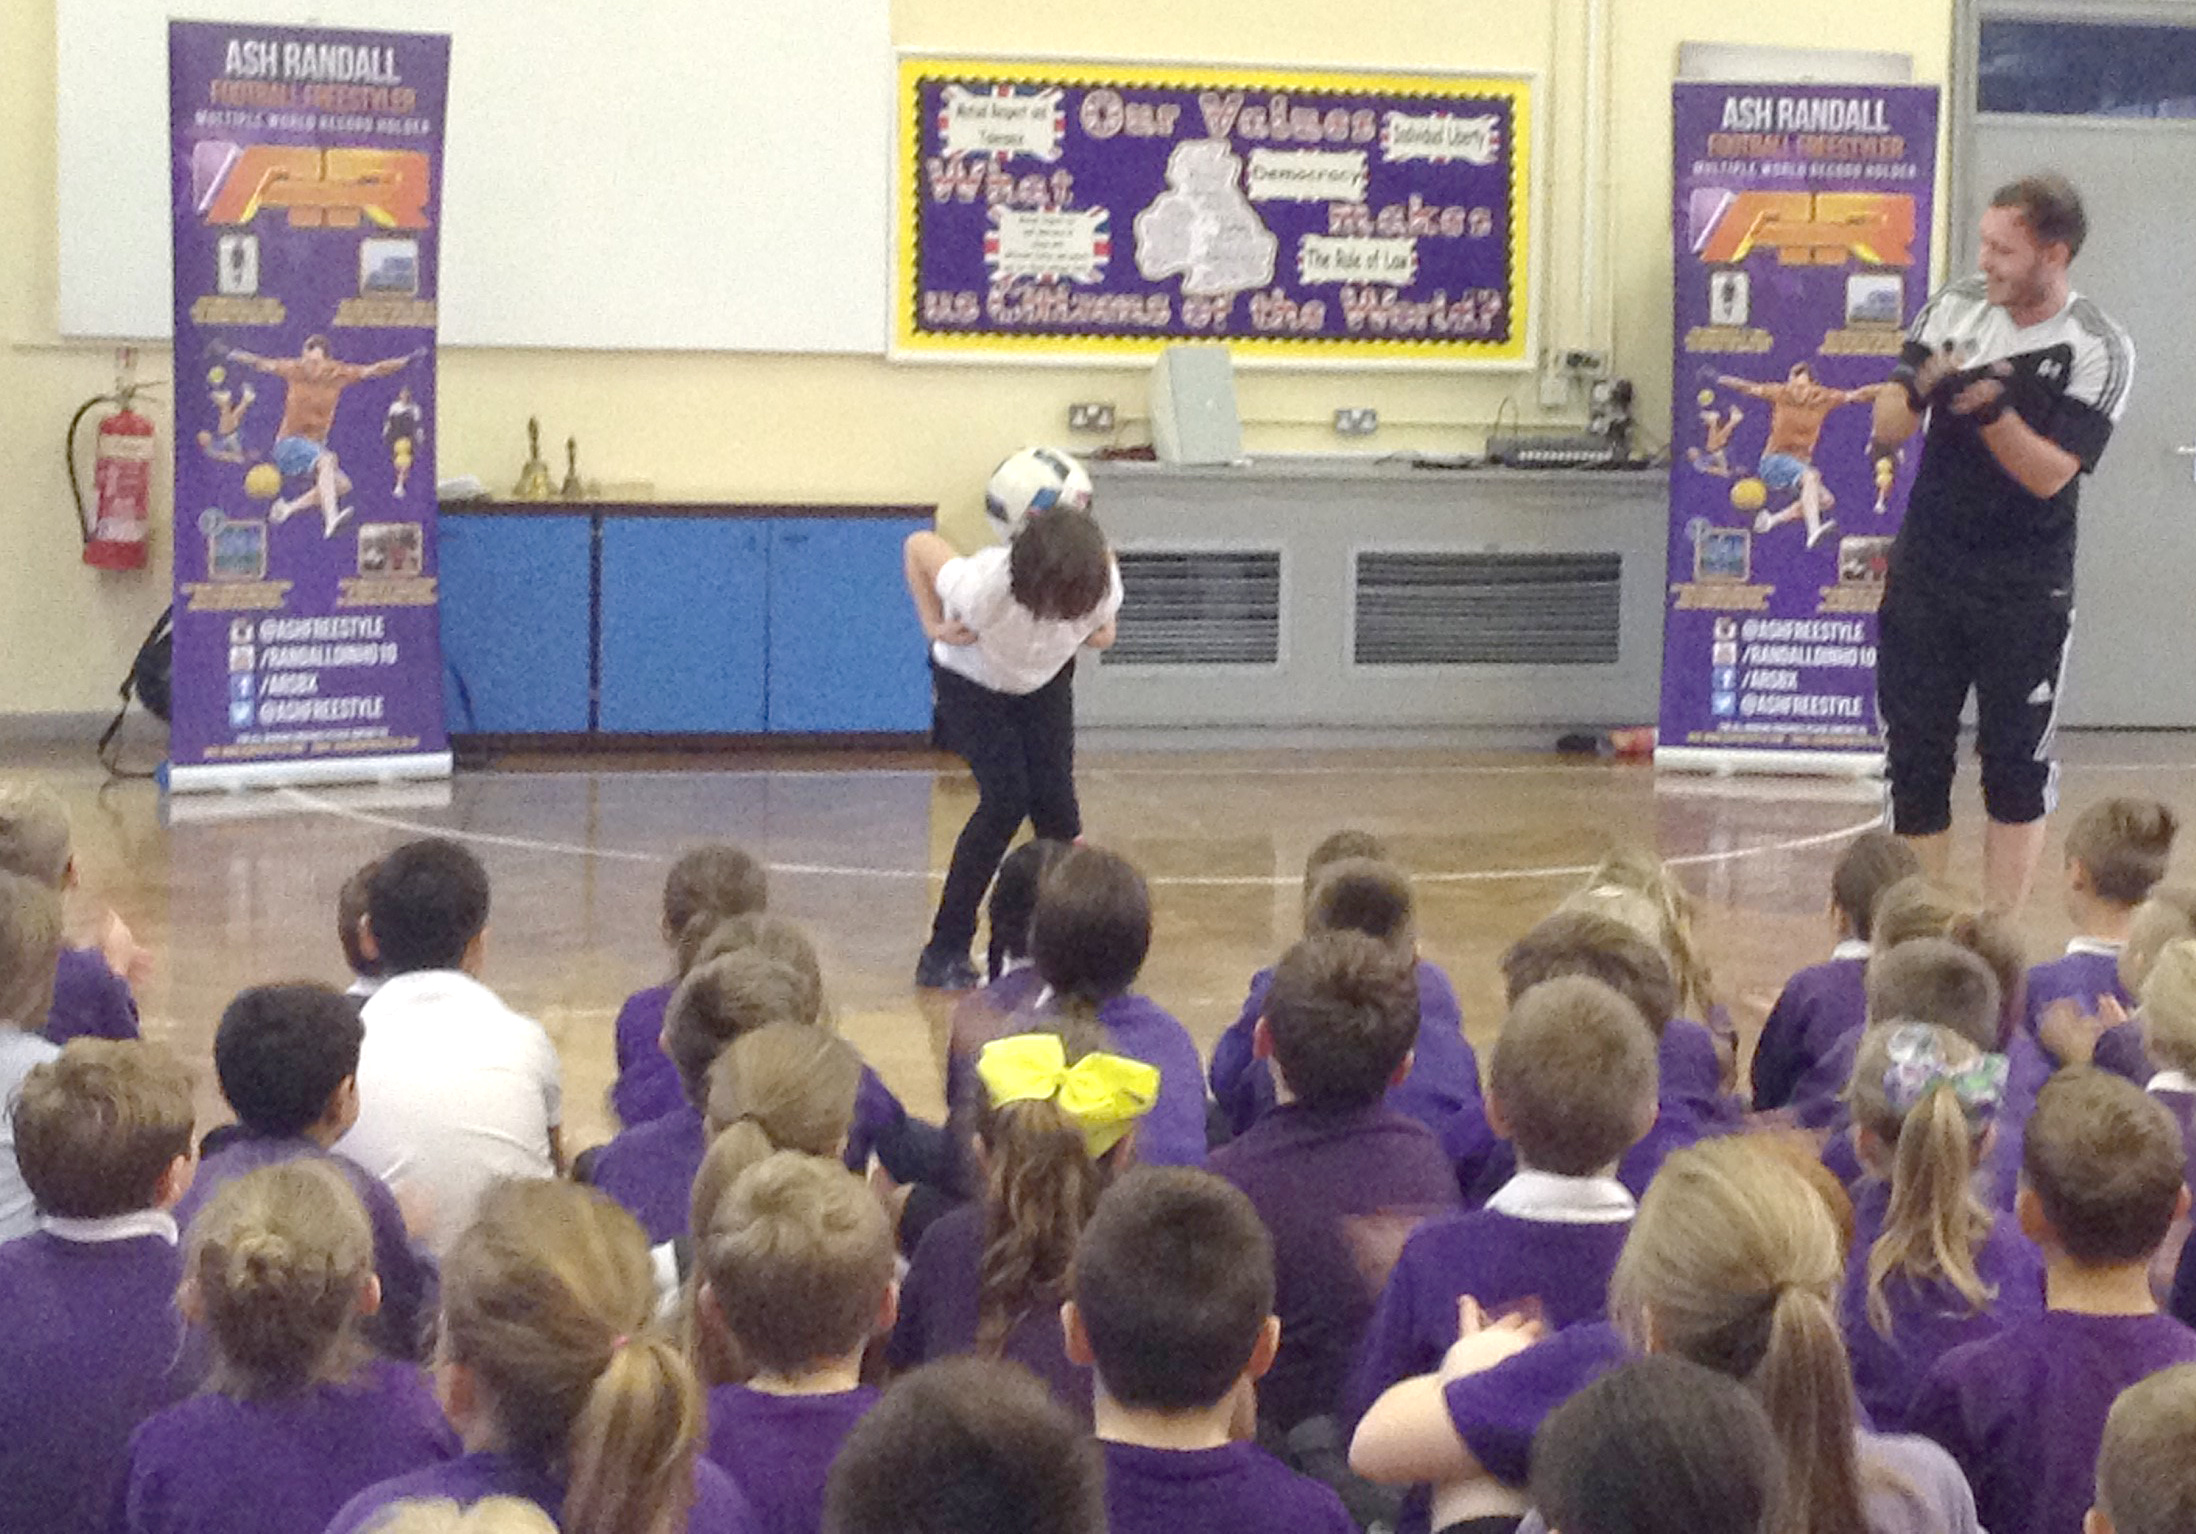 Football Freestyling Demo at Stephenson Way School